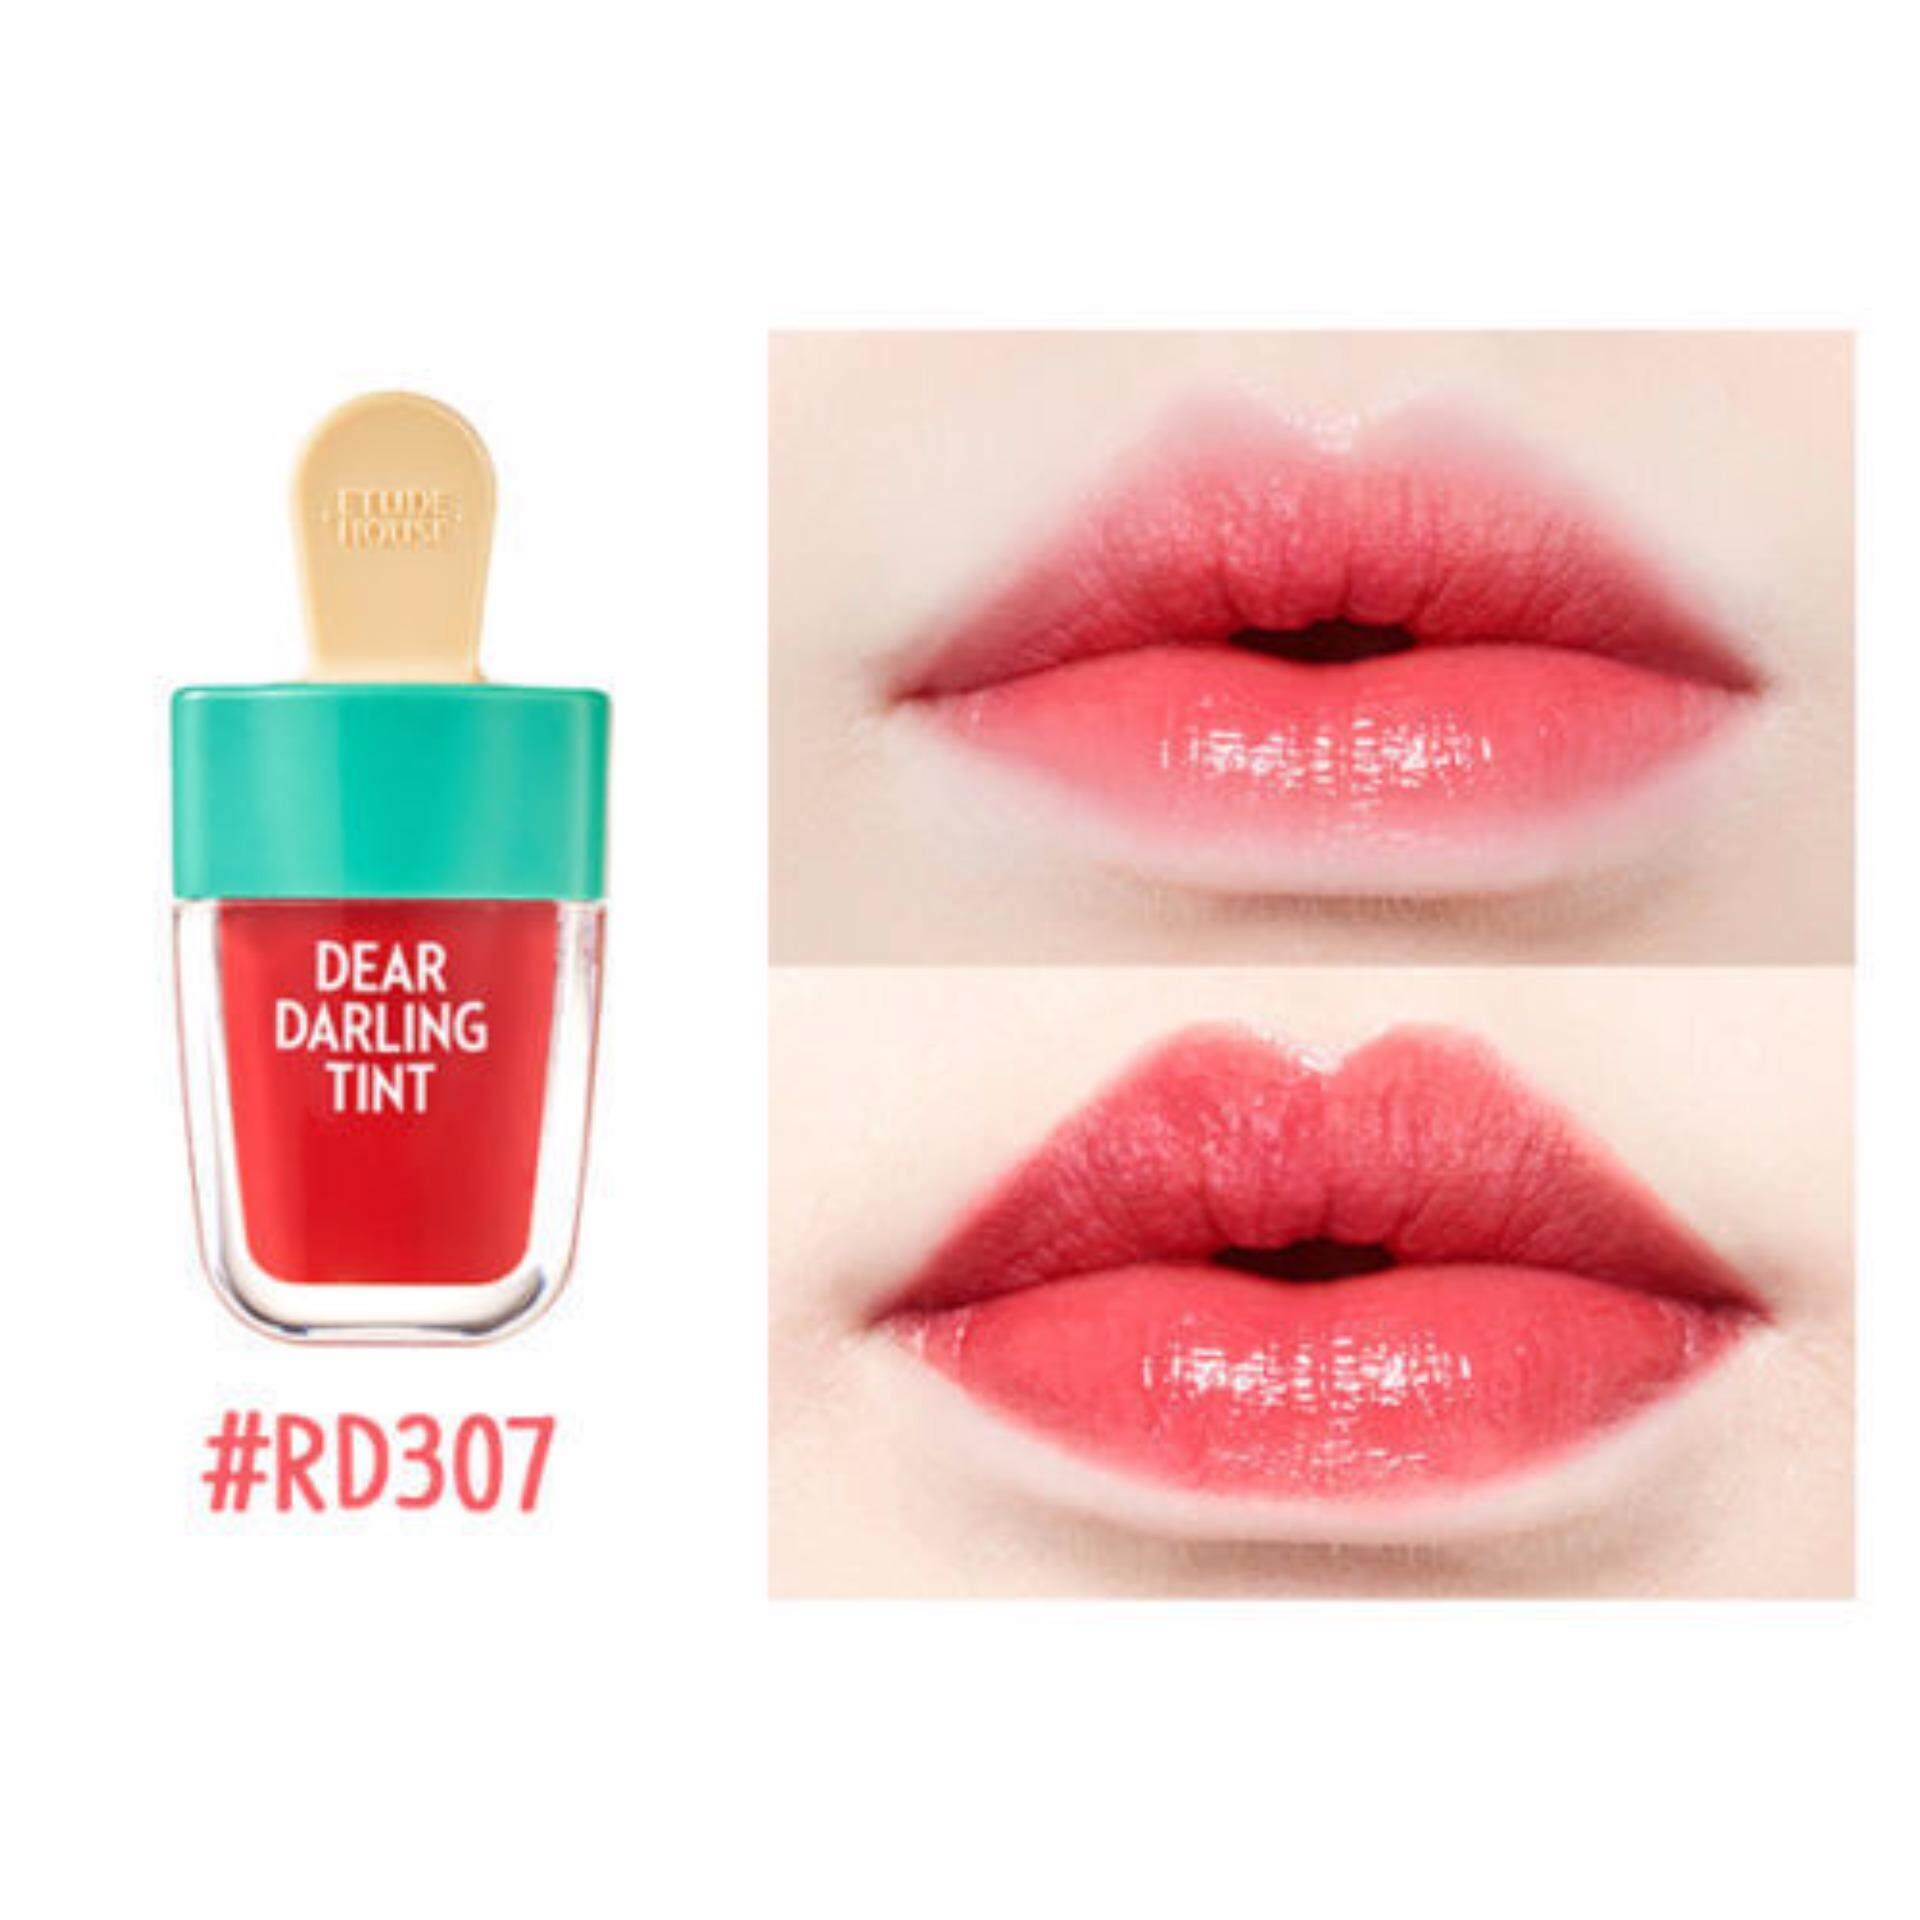 Etude House Dear Darling Water Gel Tint #RD307